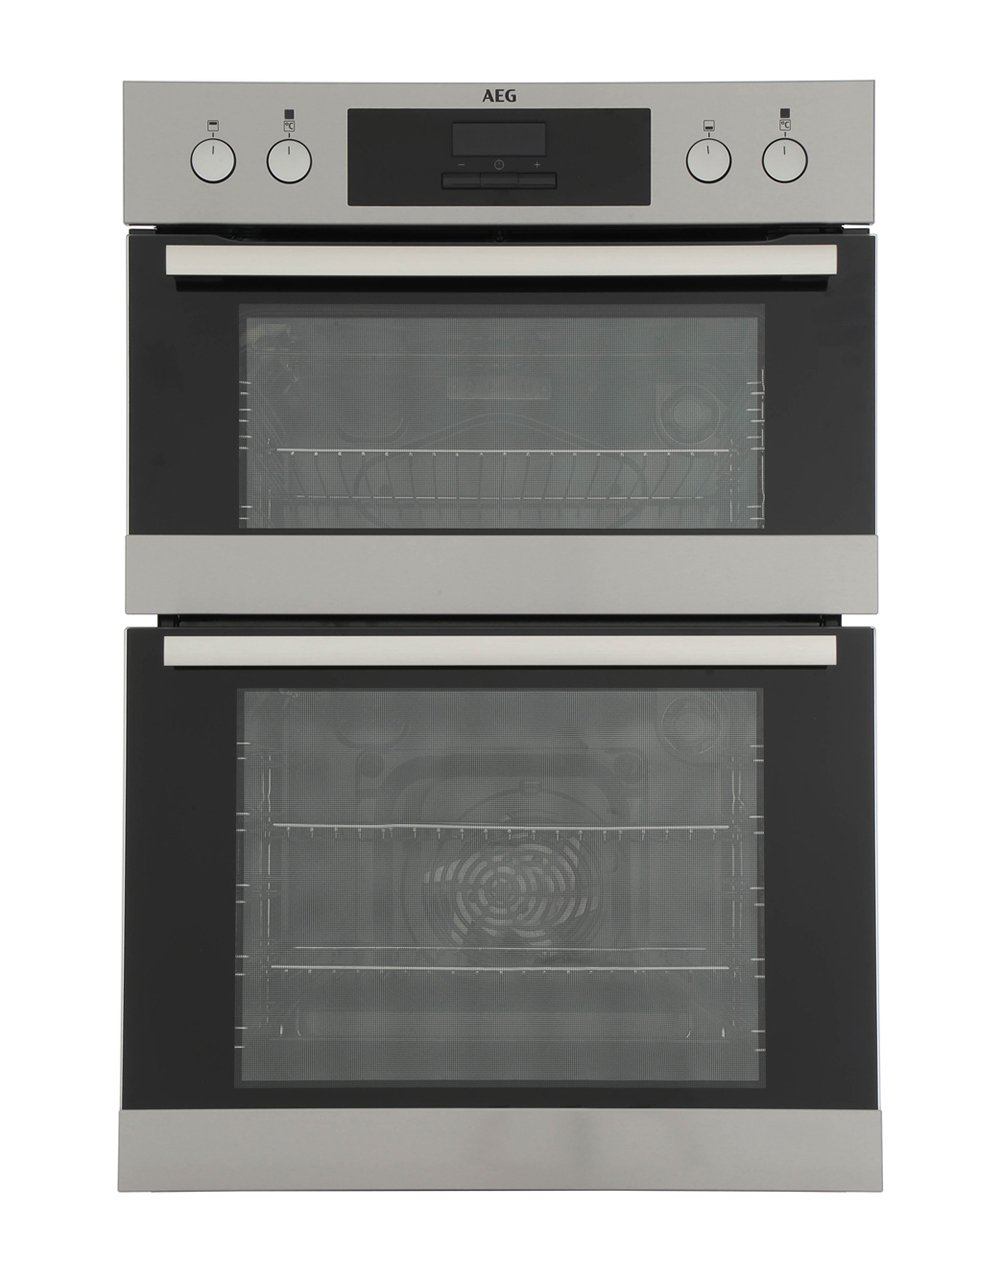 AEG DEB331010M Double Built In Electric Oven